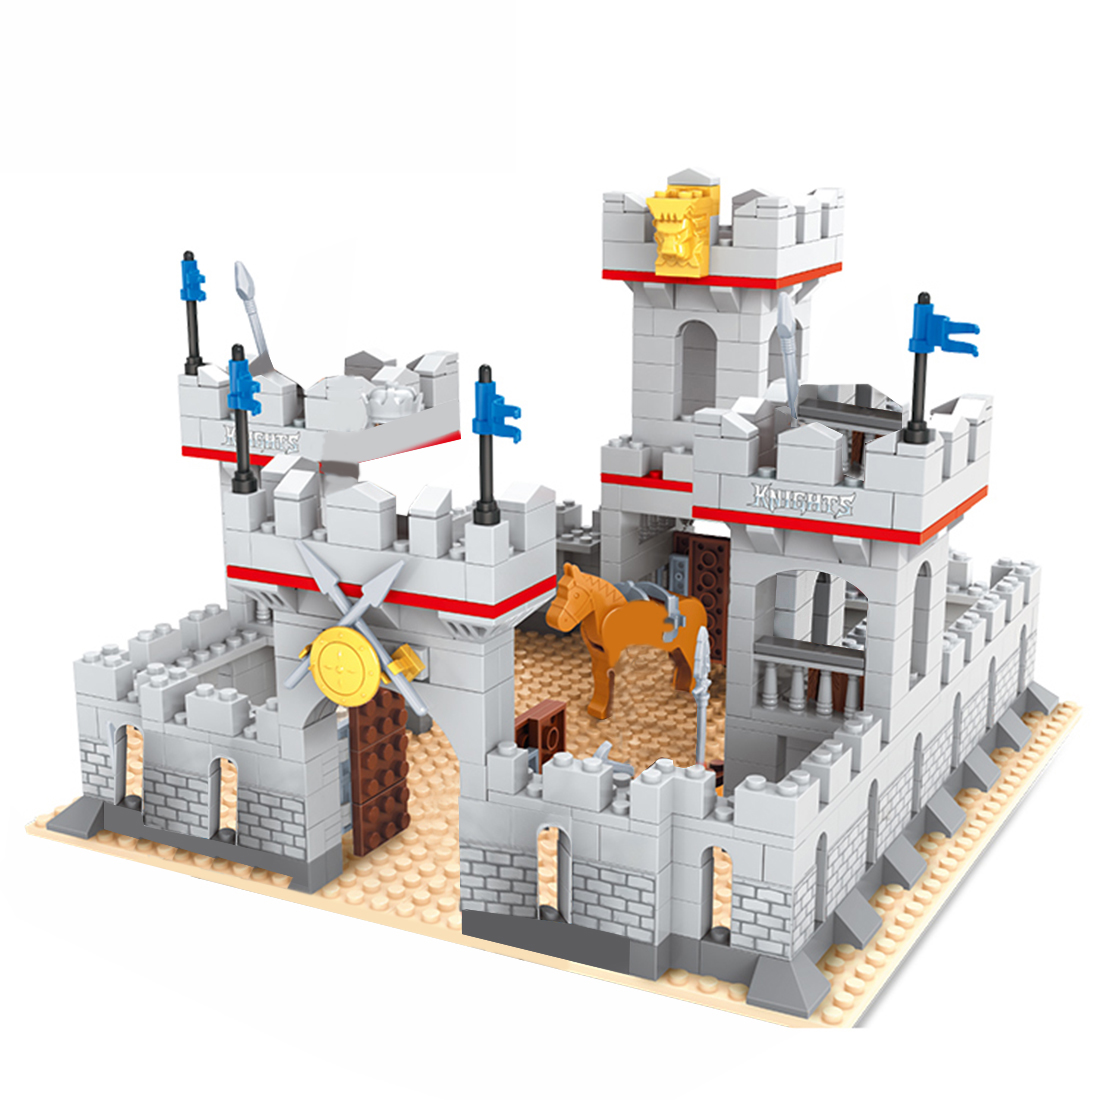 686Pcs DIY MOC Girl Series Small Particles Building Block <font><b>Castle</b></font> <font><b>Medieval</b></font> Knight Gate Guard Educational Toy Gift For Birthday image